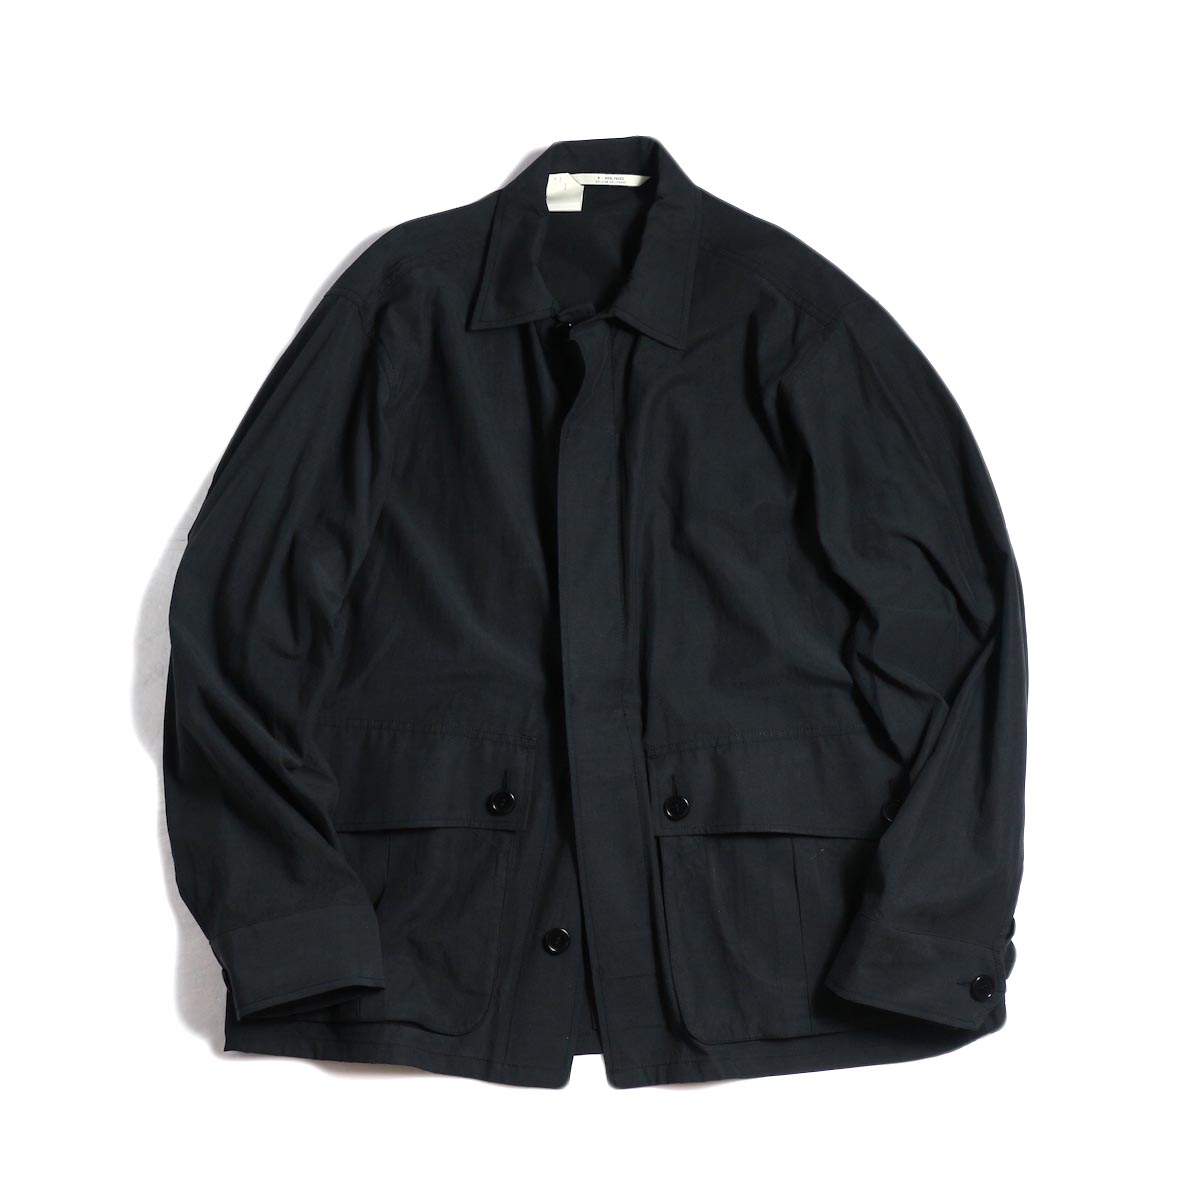 N.HOOLYWOOD / 191-BL09 Hunting Coverall Jacket -Black